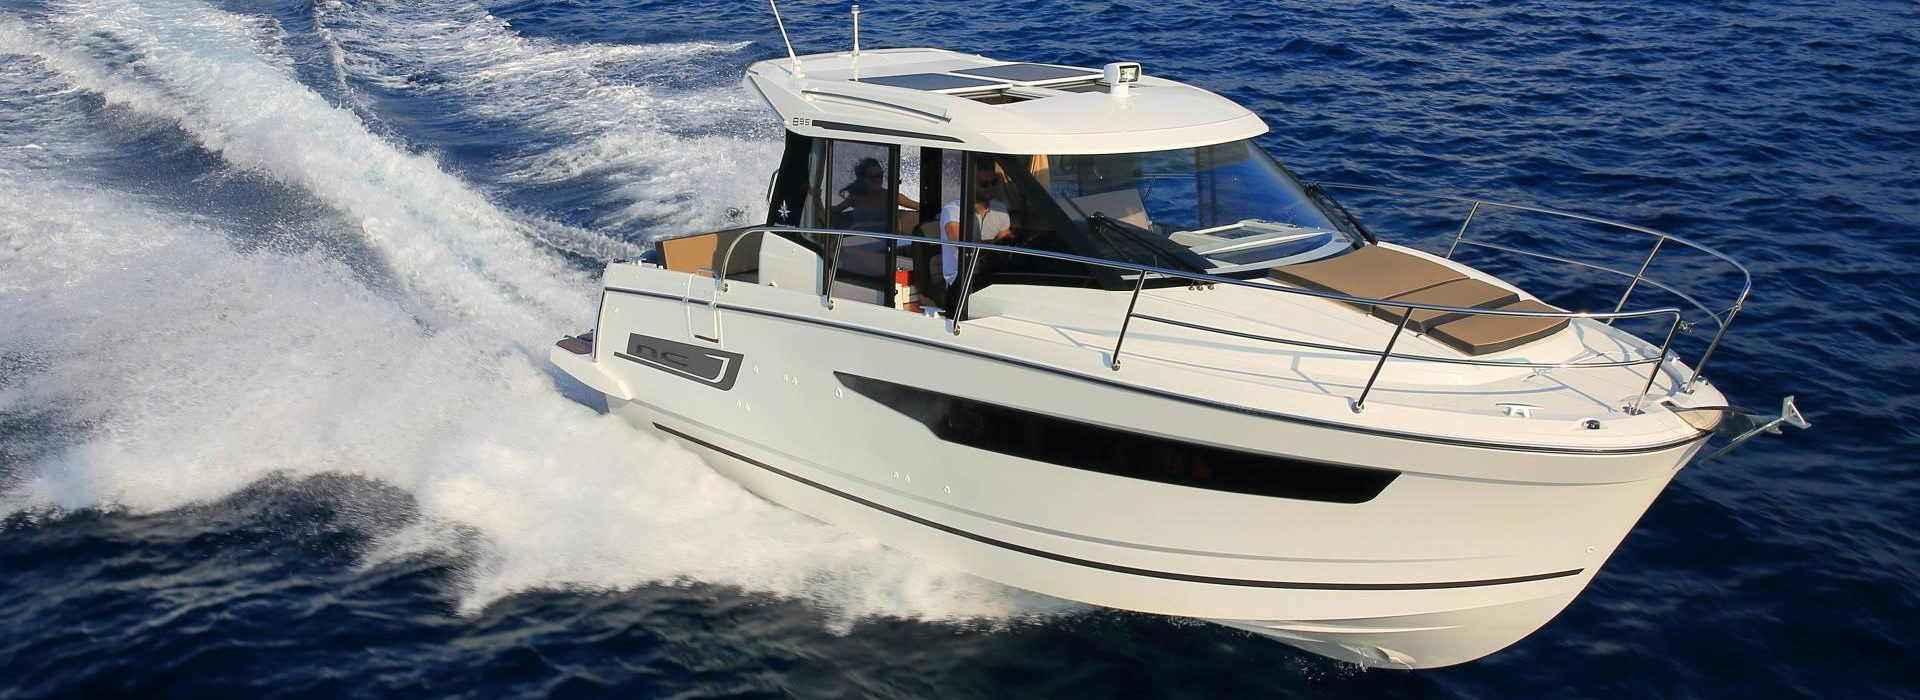 Jeanneau outboard NC 895 cruising in open water